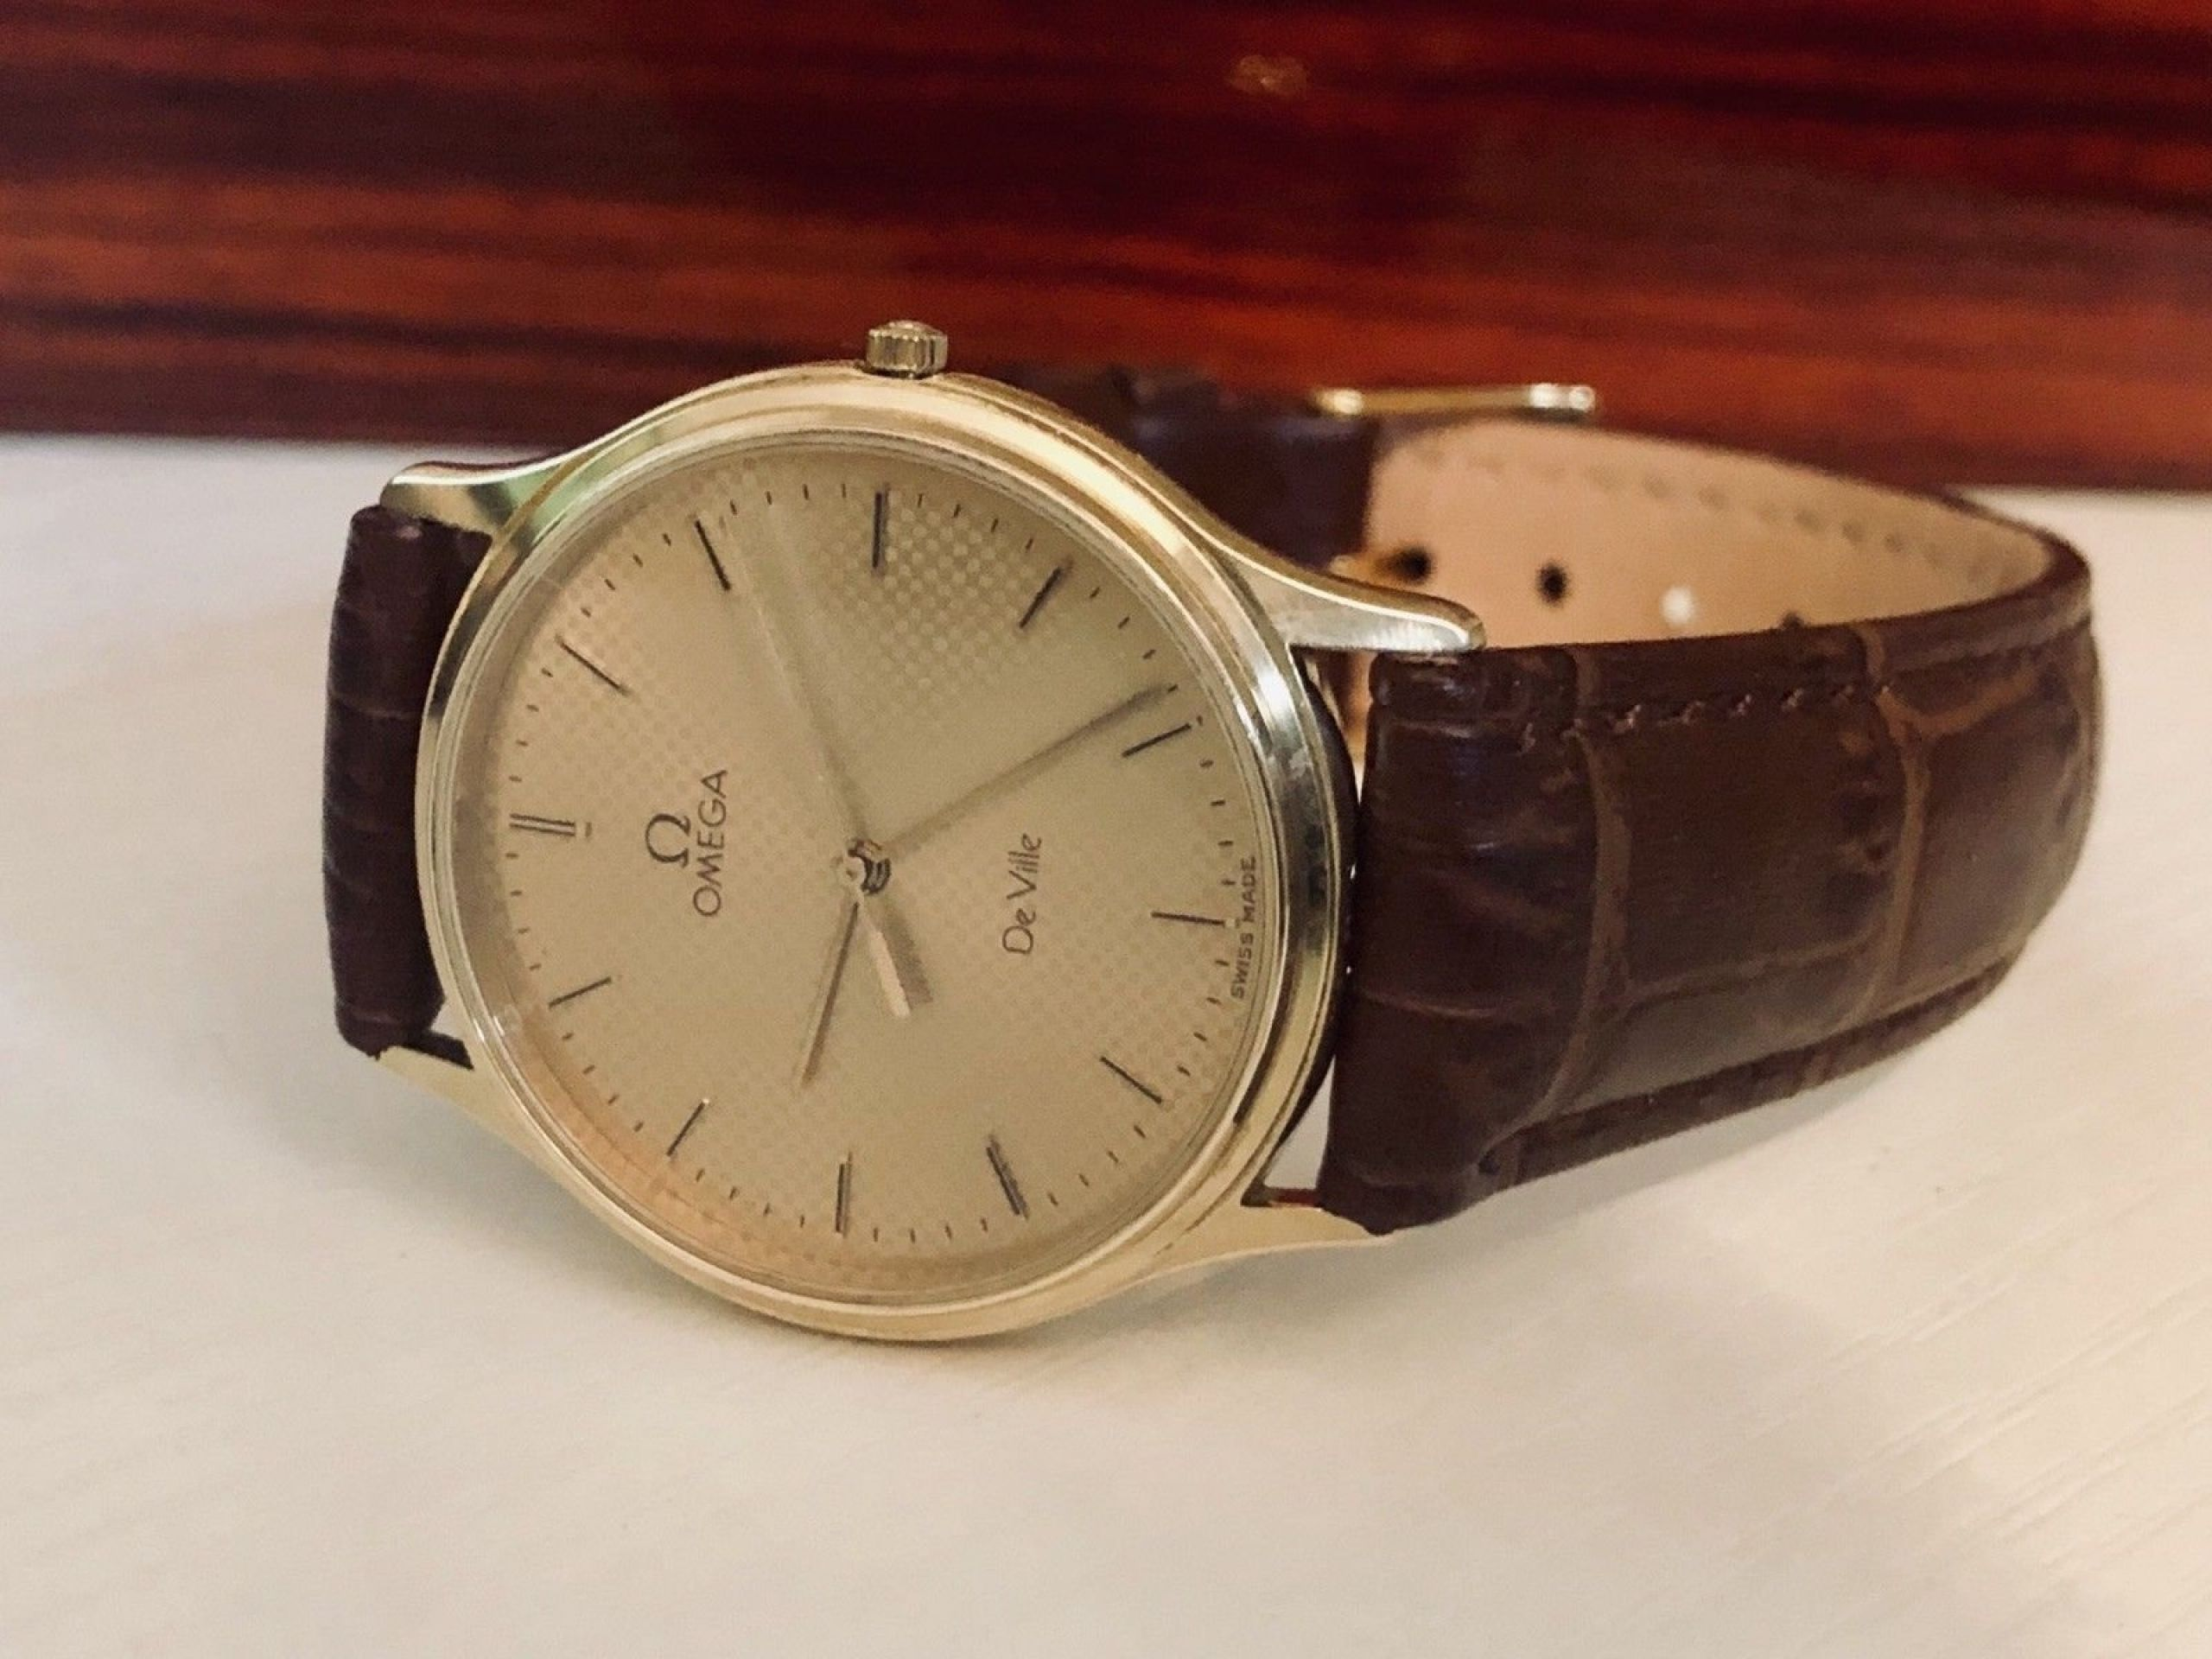 OMEGA CLASSIC DE VILLE MENS VINTAGE WATCH QUARTZ 1980 CAL 1417 DAY DATE